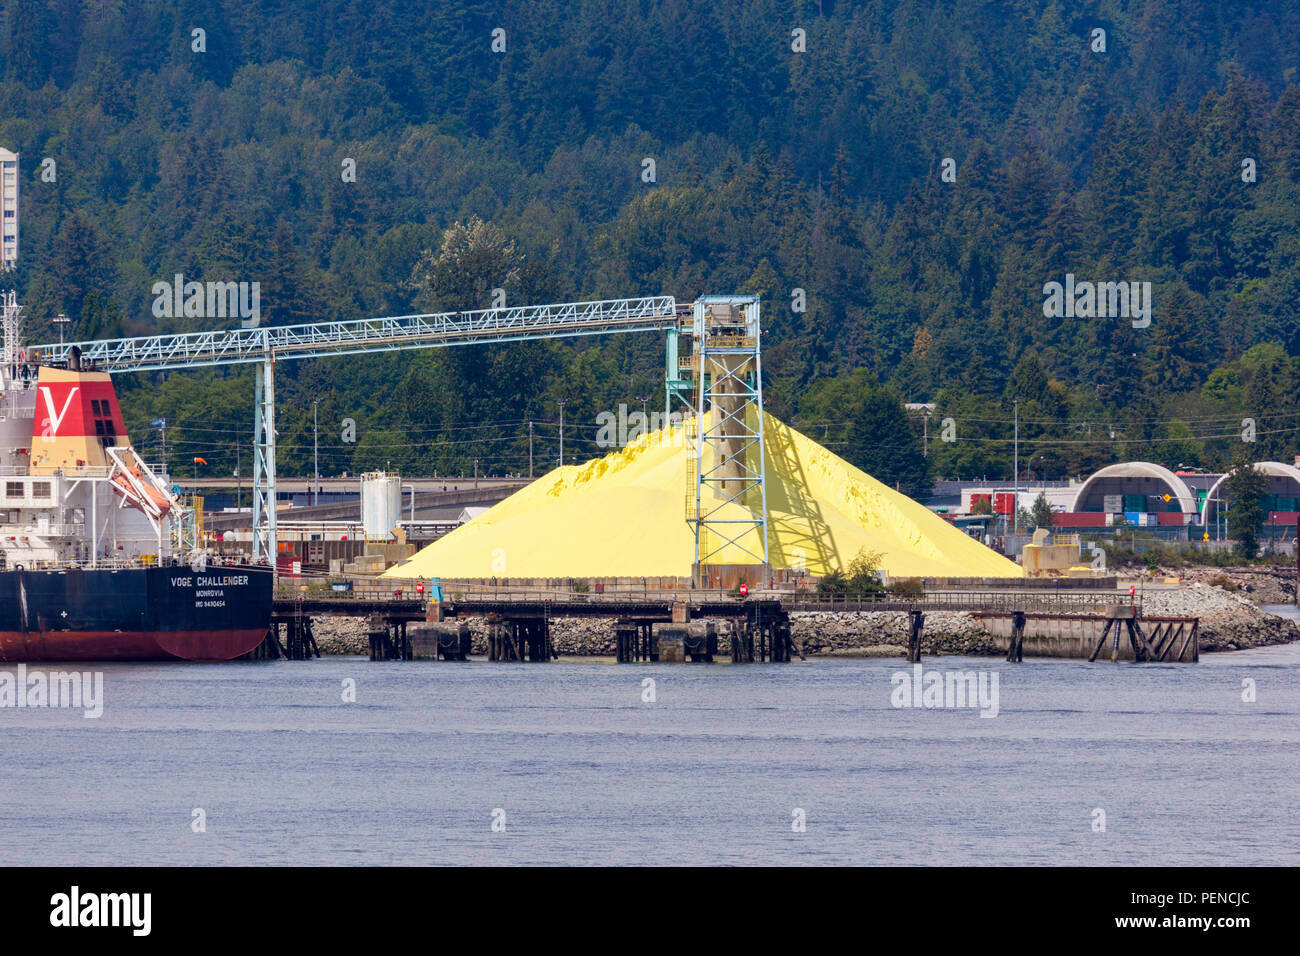 A heap of sulphur awaiting export by the bulk carrier Voge Challenger from the harbour at North Vancouver, British Columbia, Canada - Stock Image